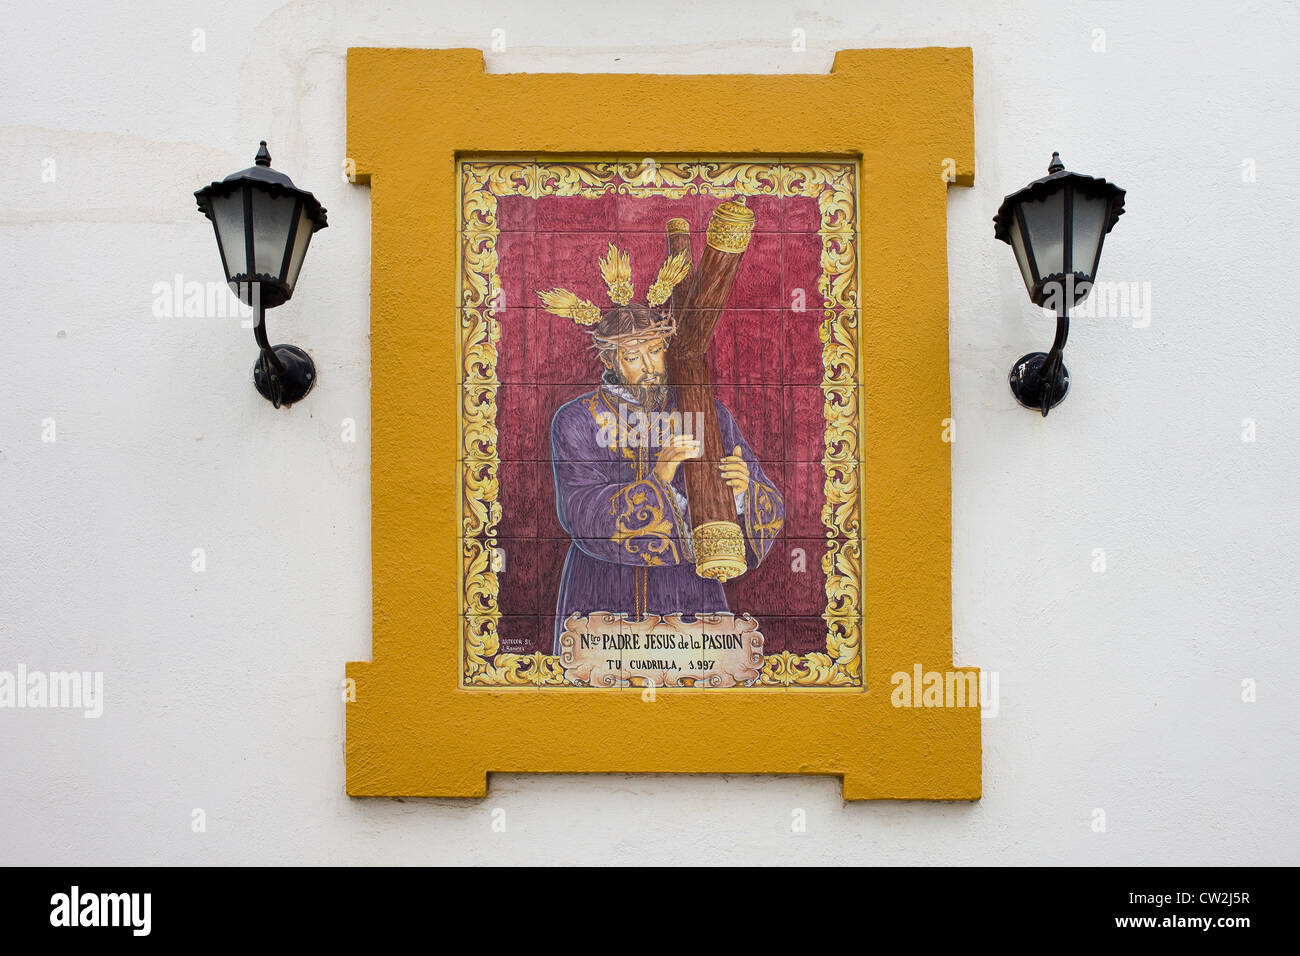 Jesus chris carrying the cross an azulejo style ceramic tilework on jesus chris carrying the cross an azulejo style ceramic tilework on a wall of a house in old jewish quarter cordoba spain dailygadgetfo Images